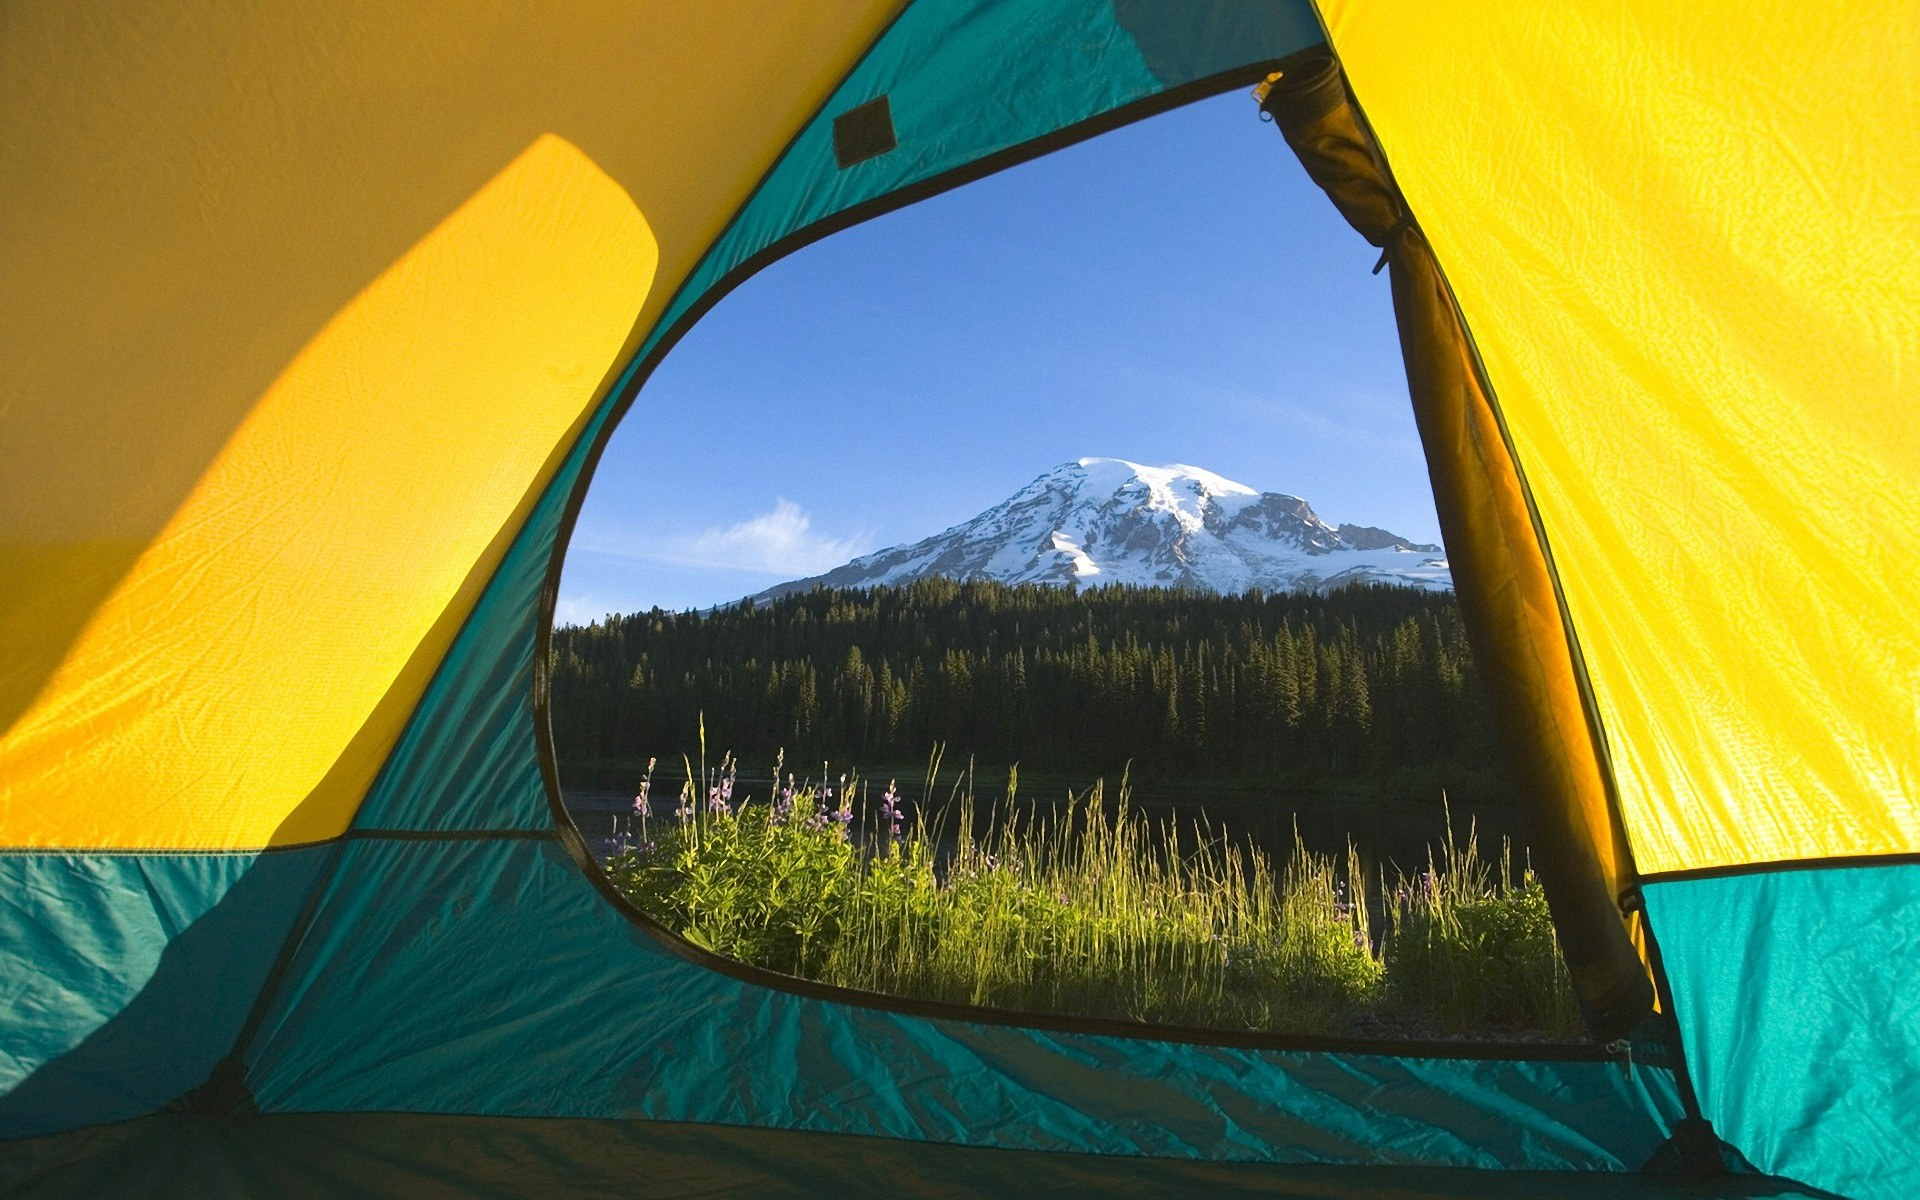 Best 53 Campground Backgrounds on HipWallpaper Campground 1920x1200